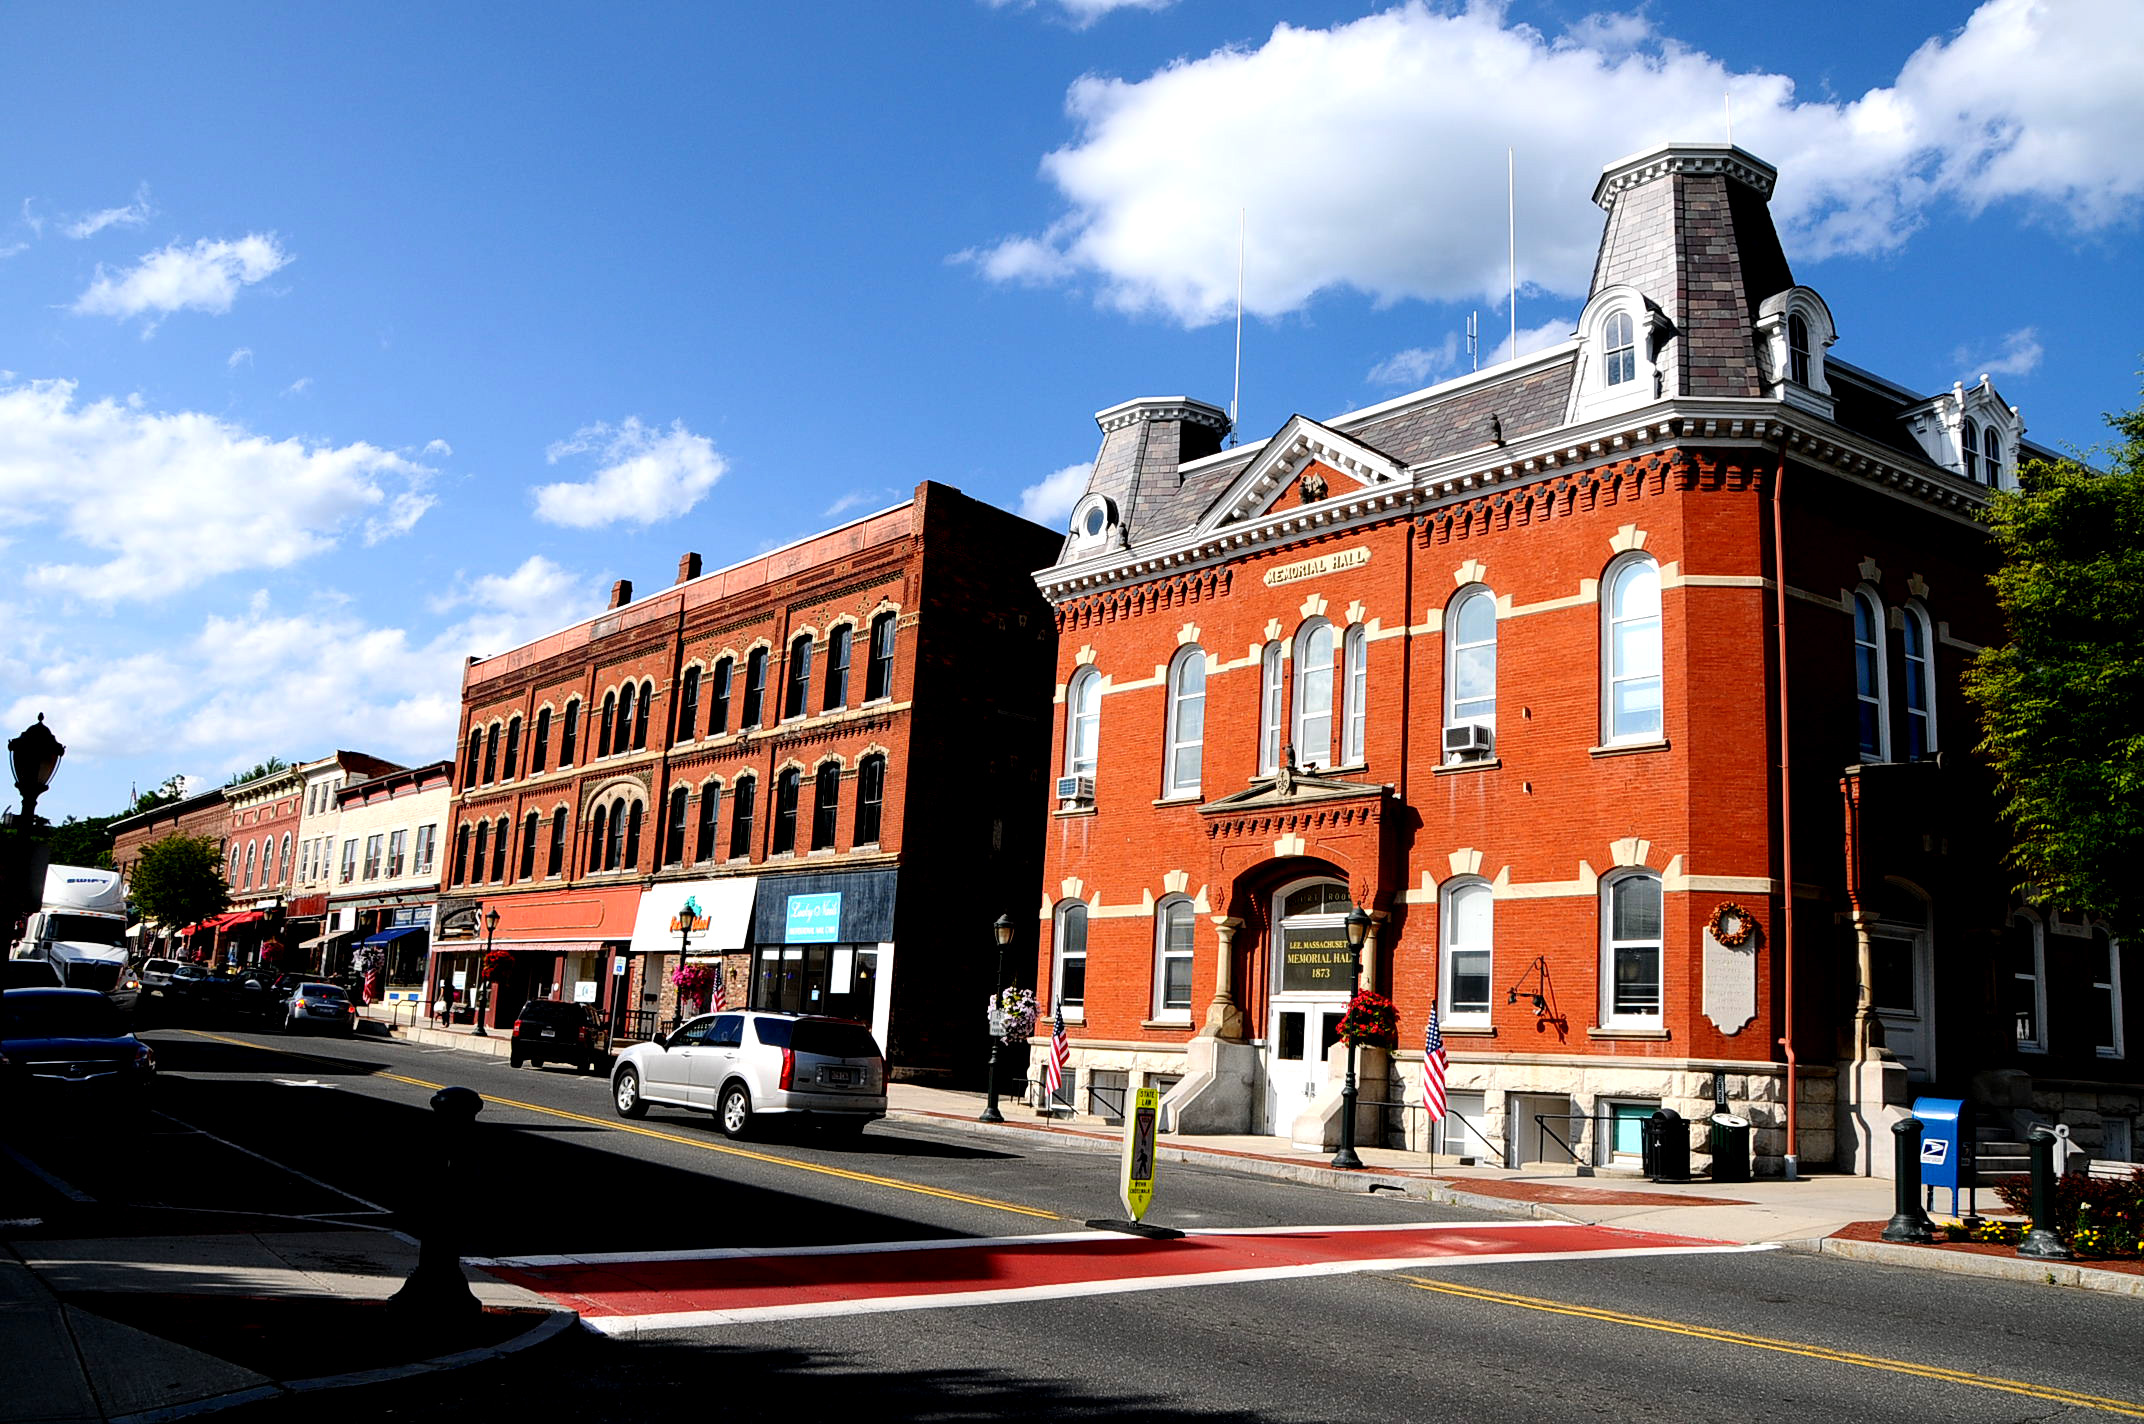 Downtown Lee